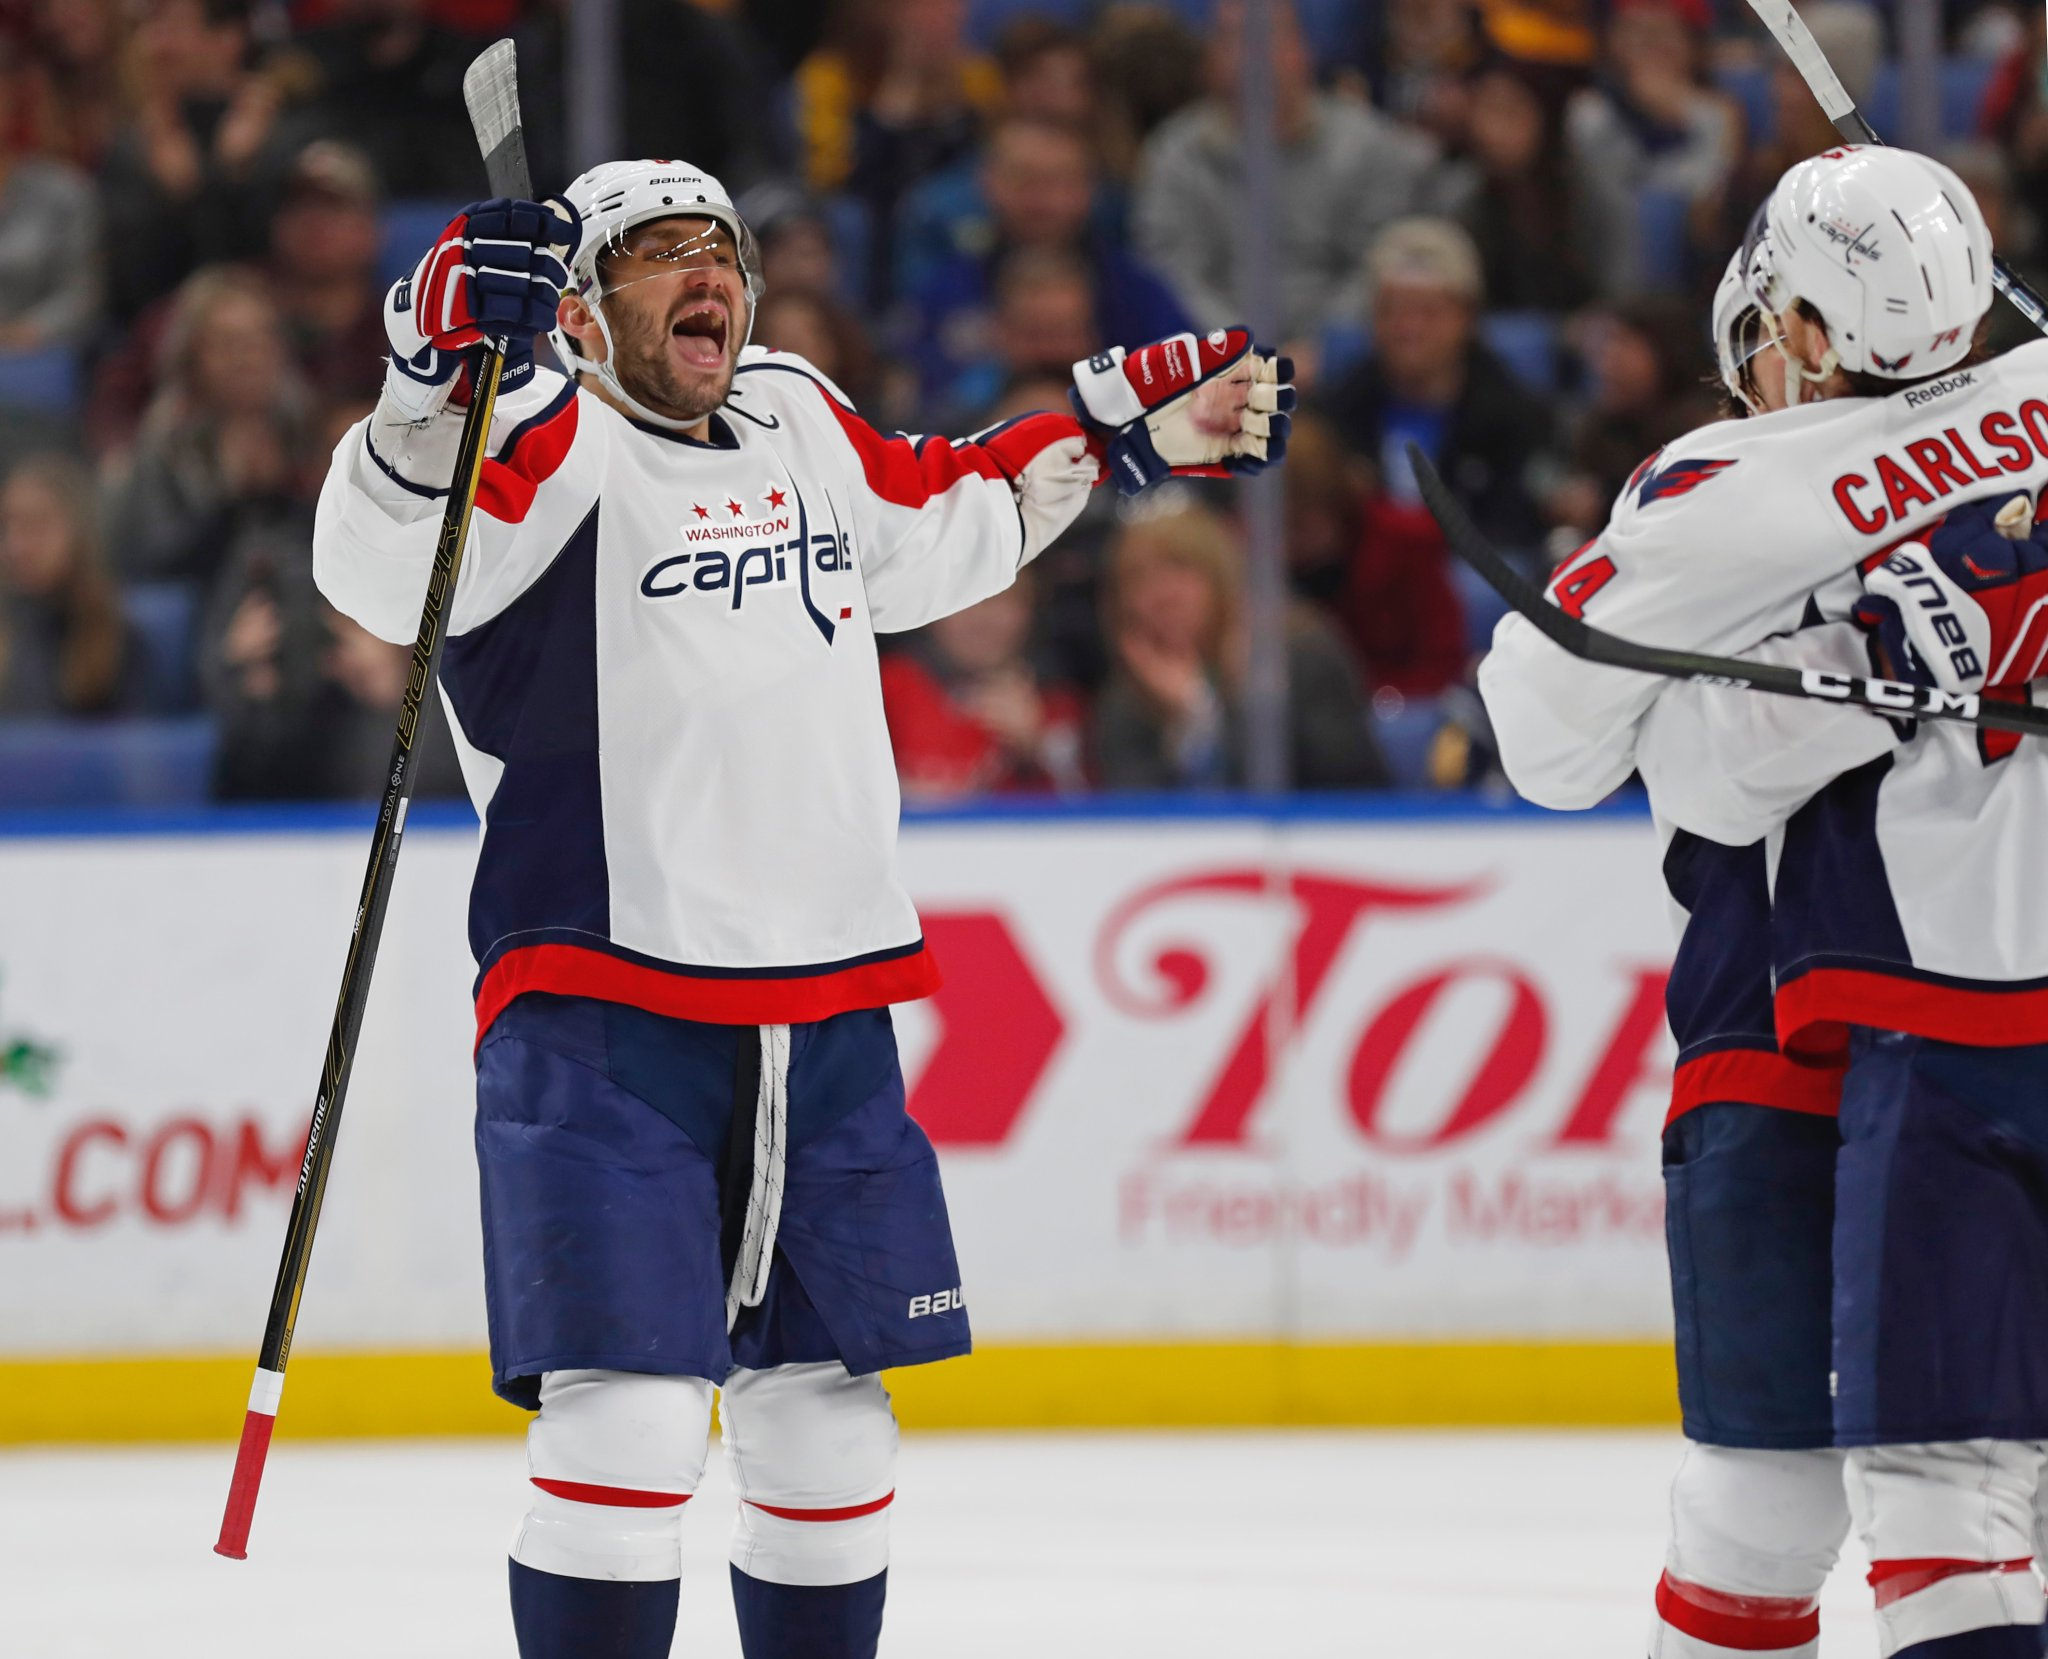 Alex Ovechkin celebrates the Capitals' second power-play goal, scored by John Carlson. (Harry Scull Jr./Buffalo News)